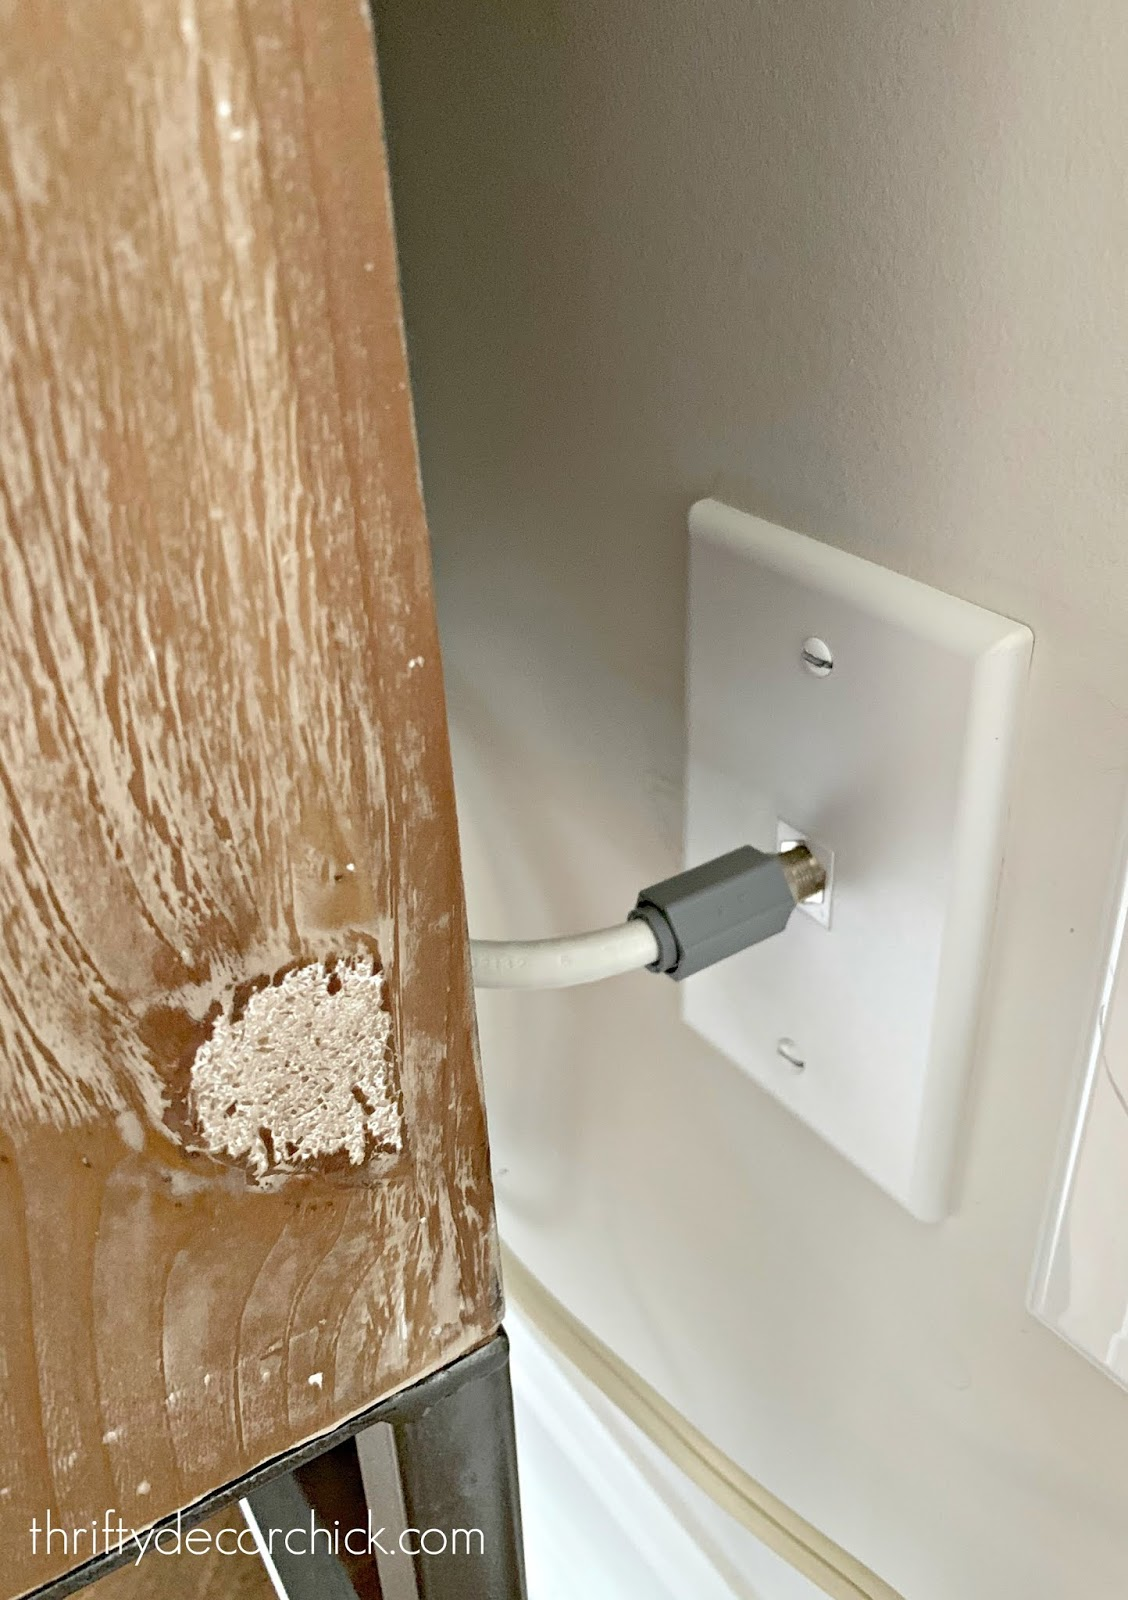 How to shorten cable outlet/cord behind furniture